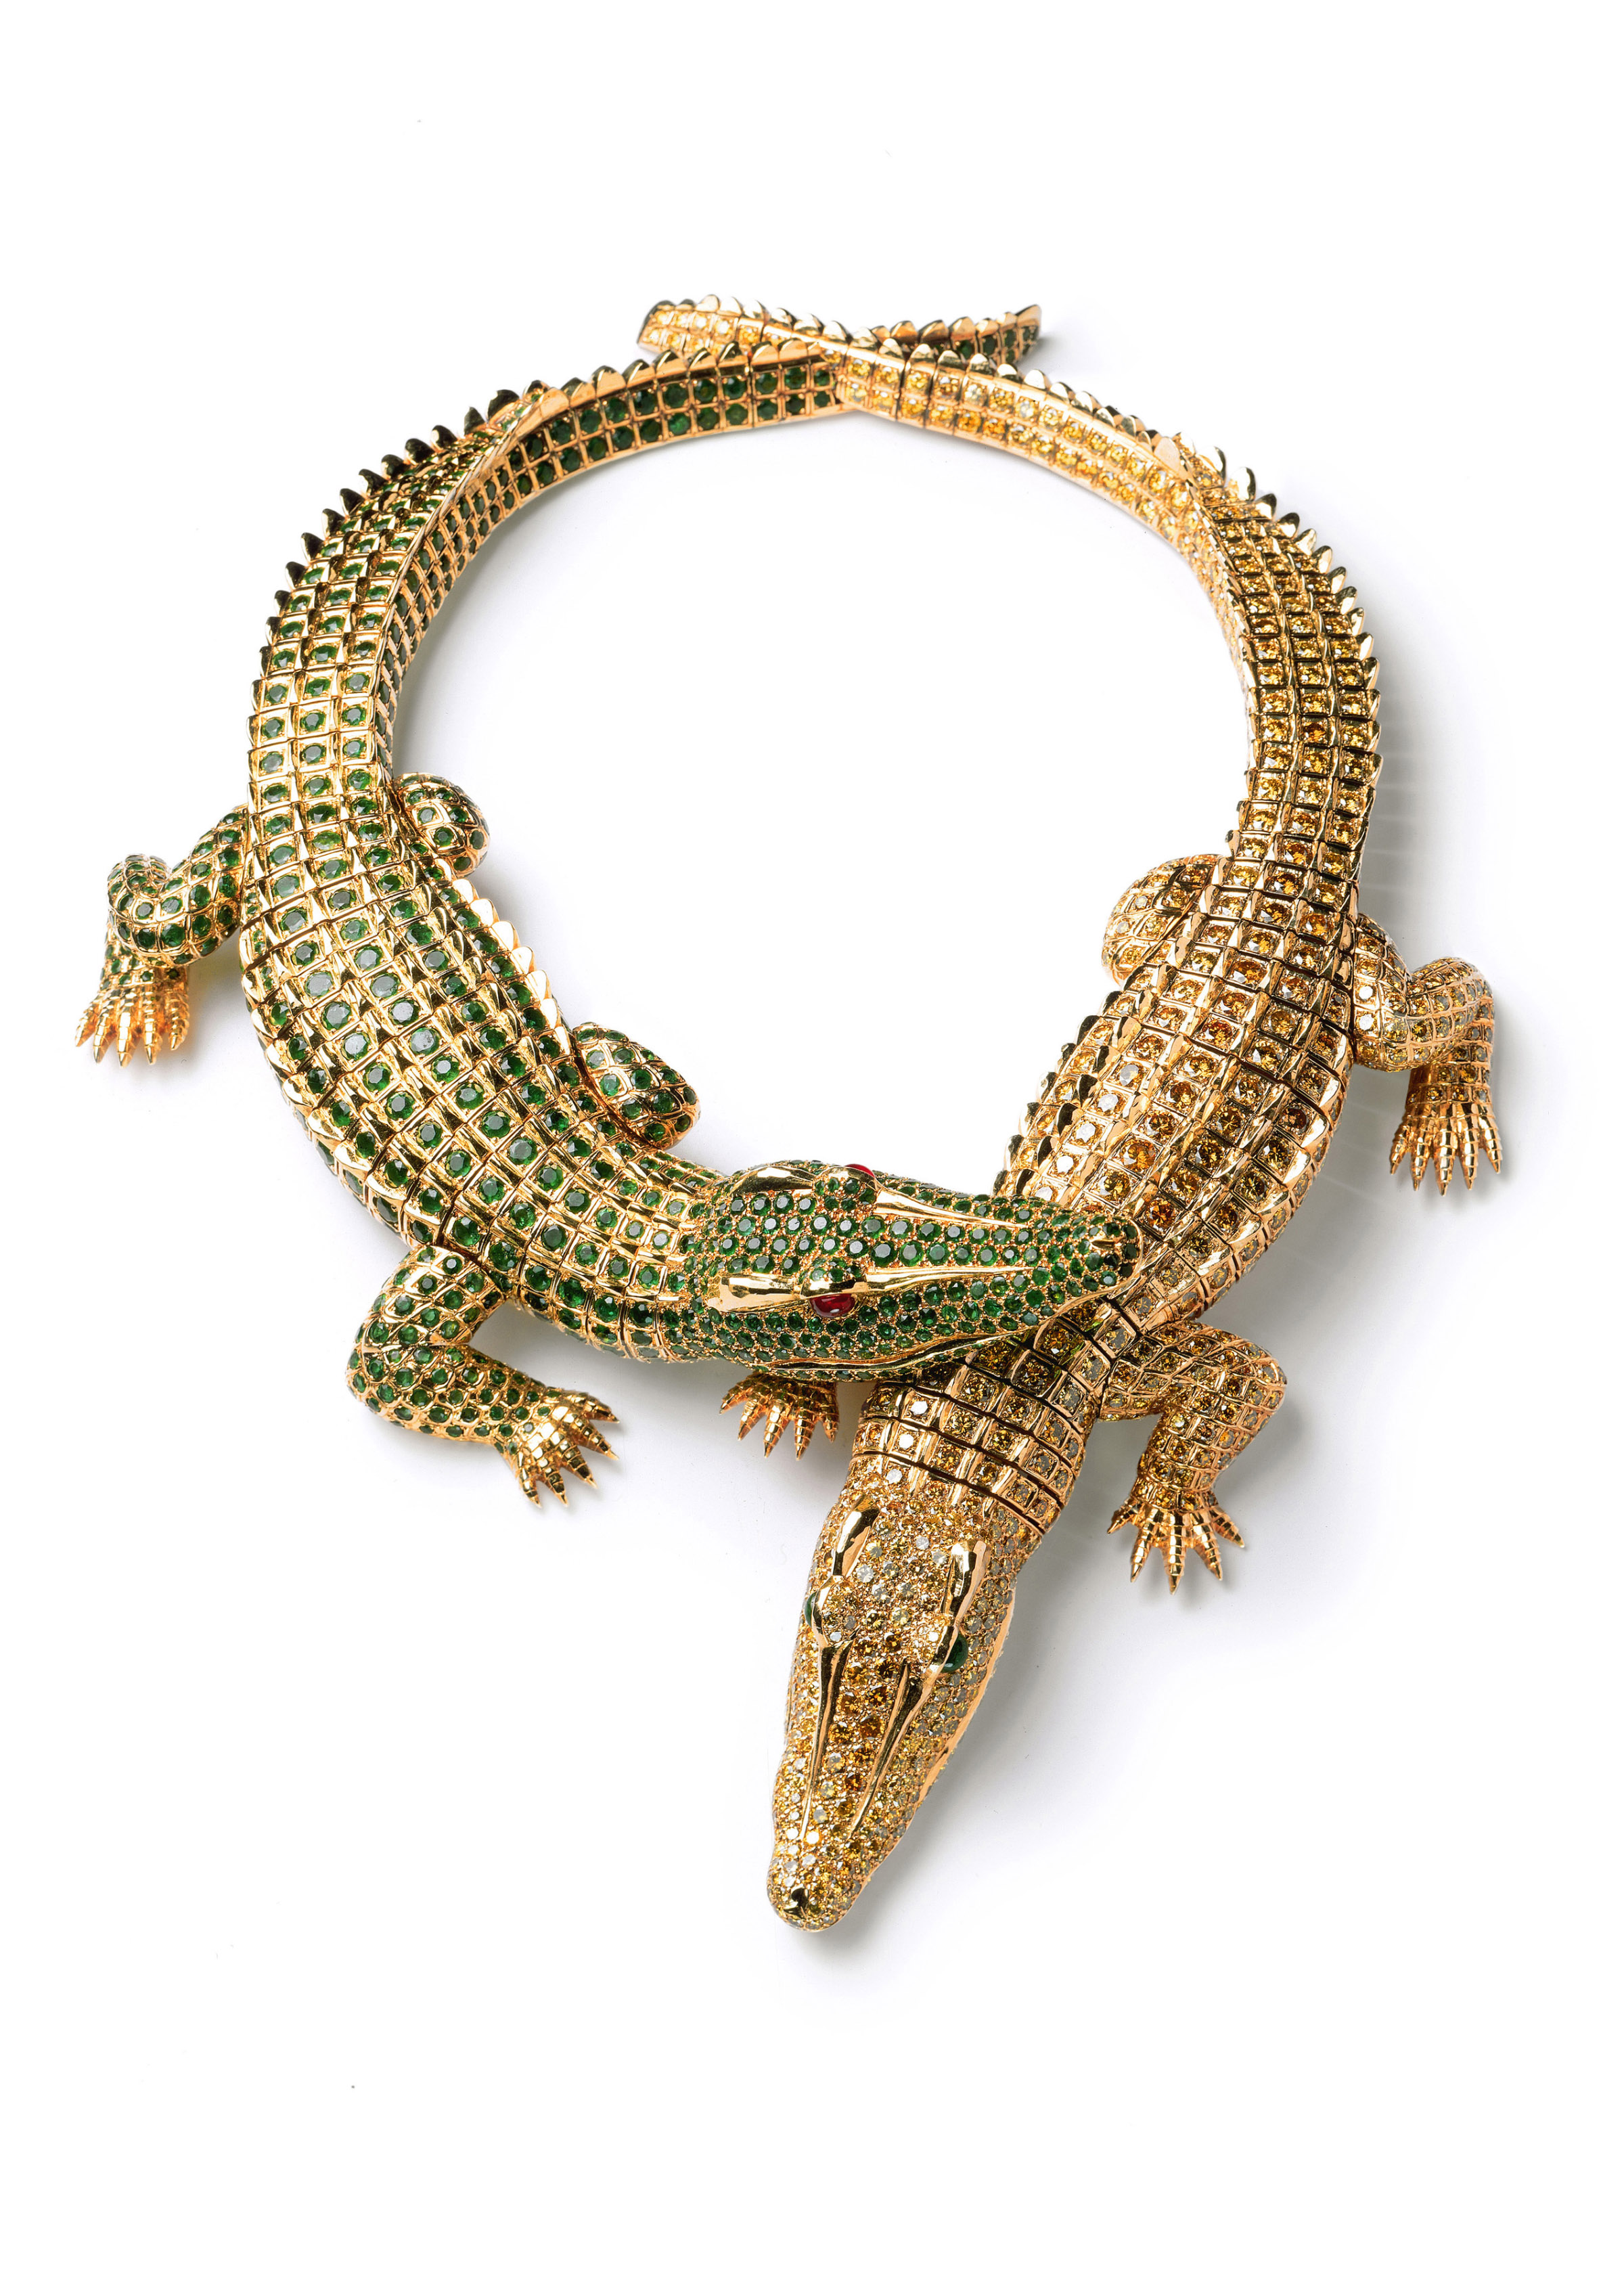 Crocodile necklace made for Maria Felix _c_ Cartier